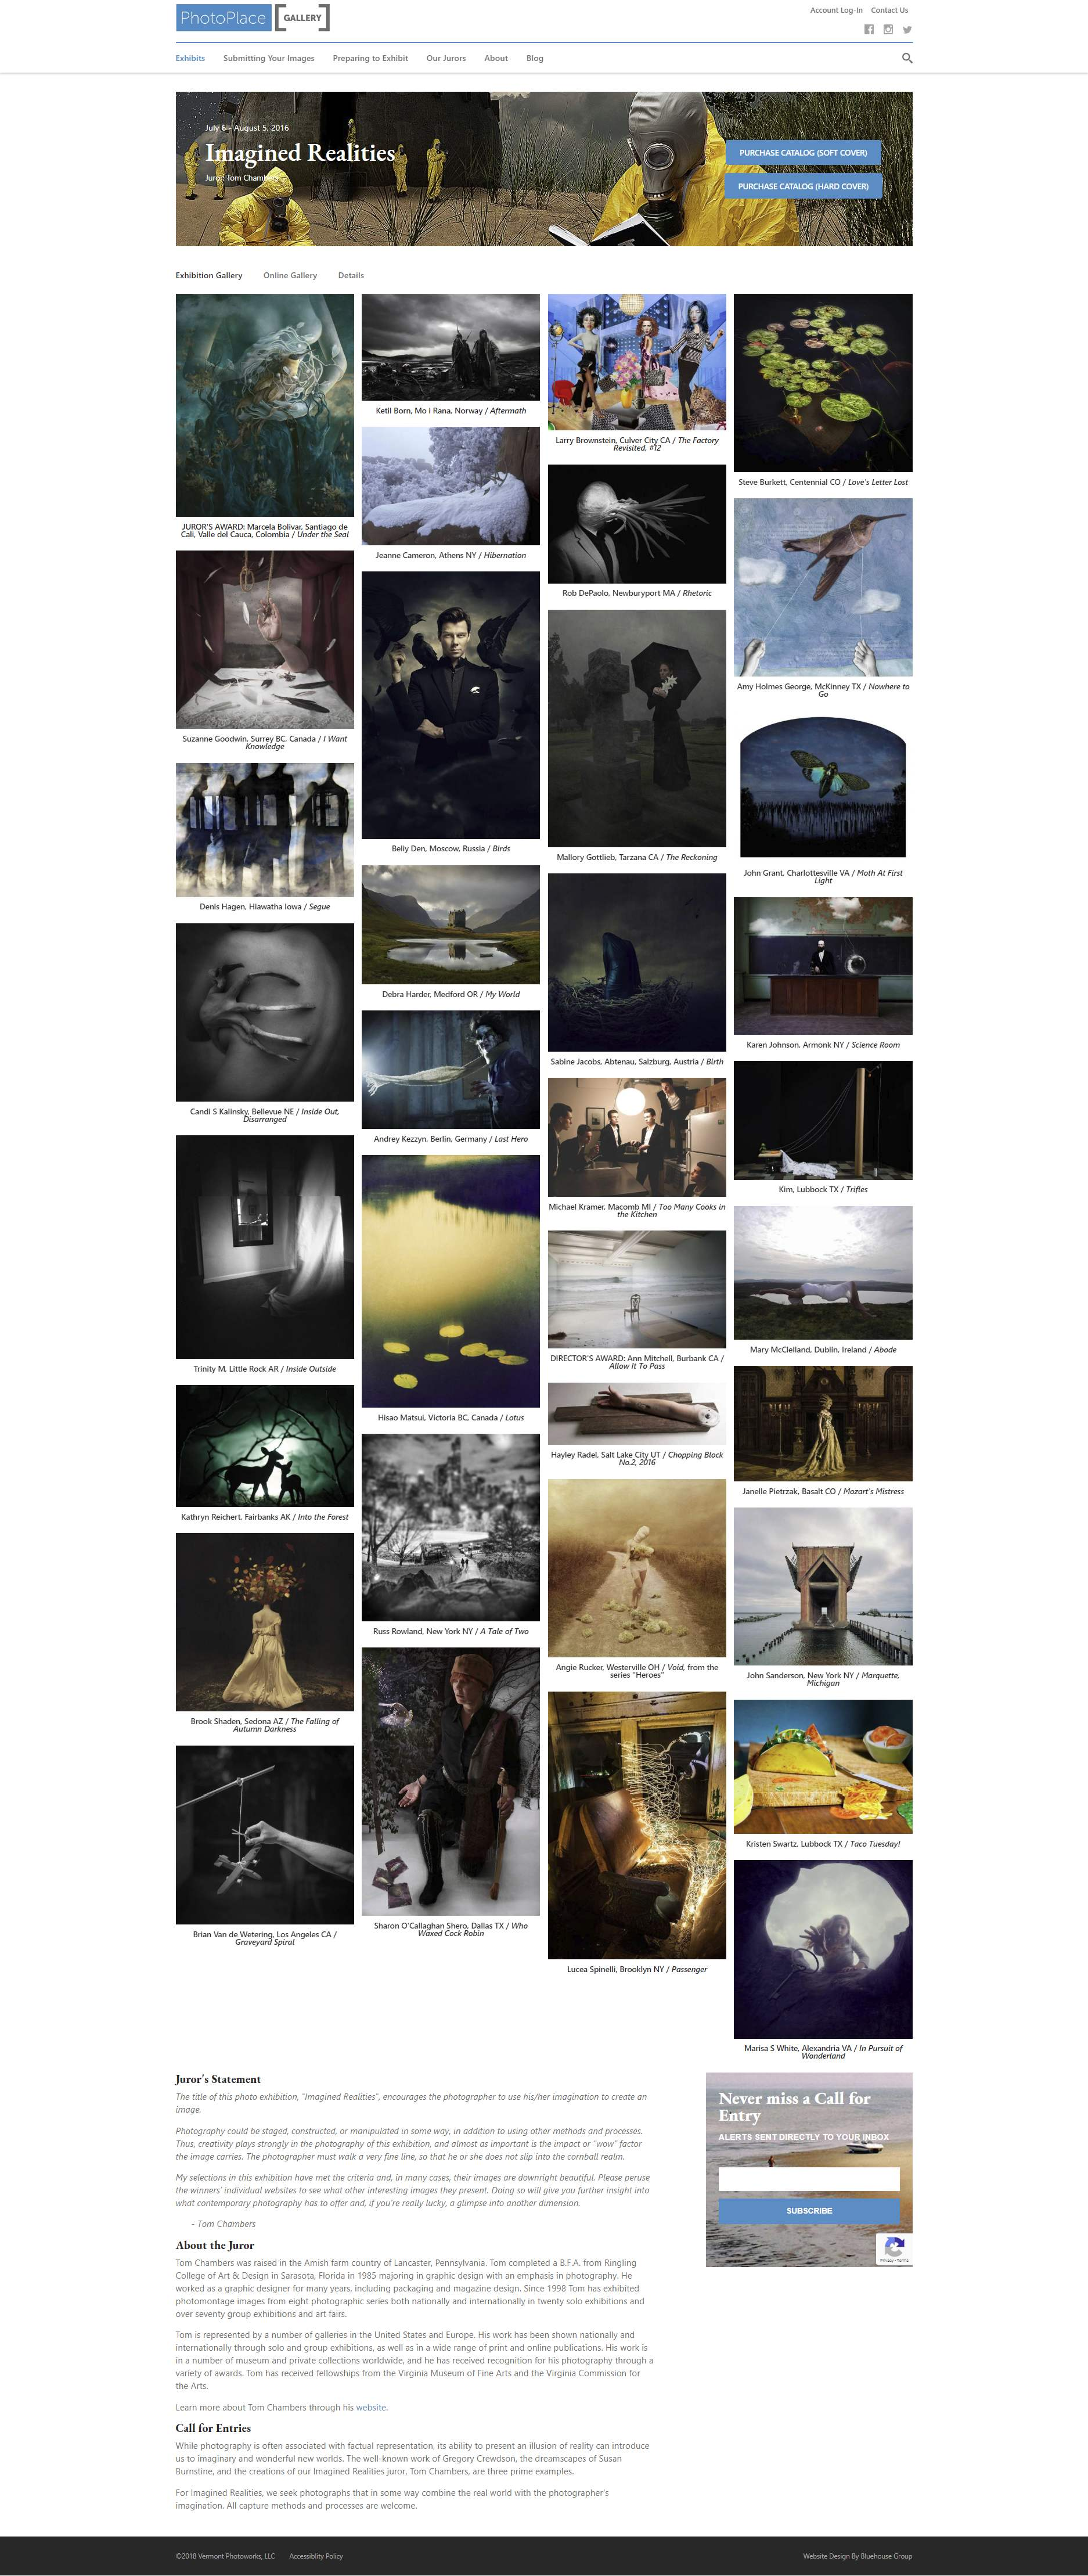 08-05-2016_Imagined Realities_PhotoPlace Gallery, Middlebury, VT.jpg